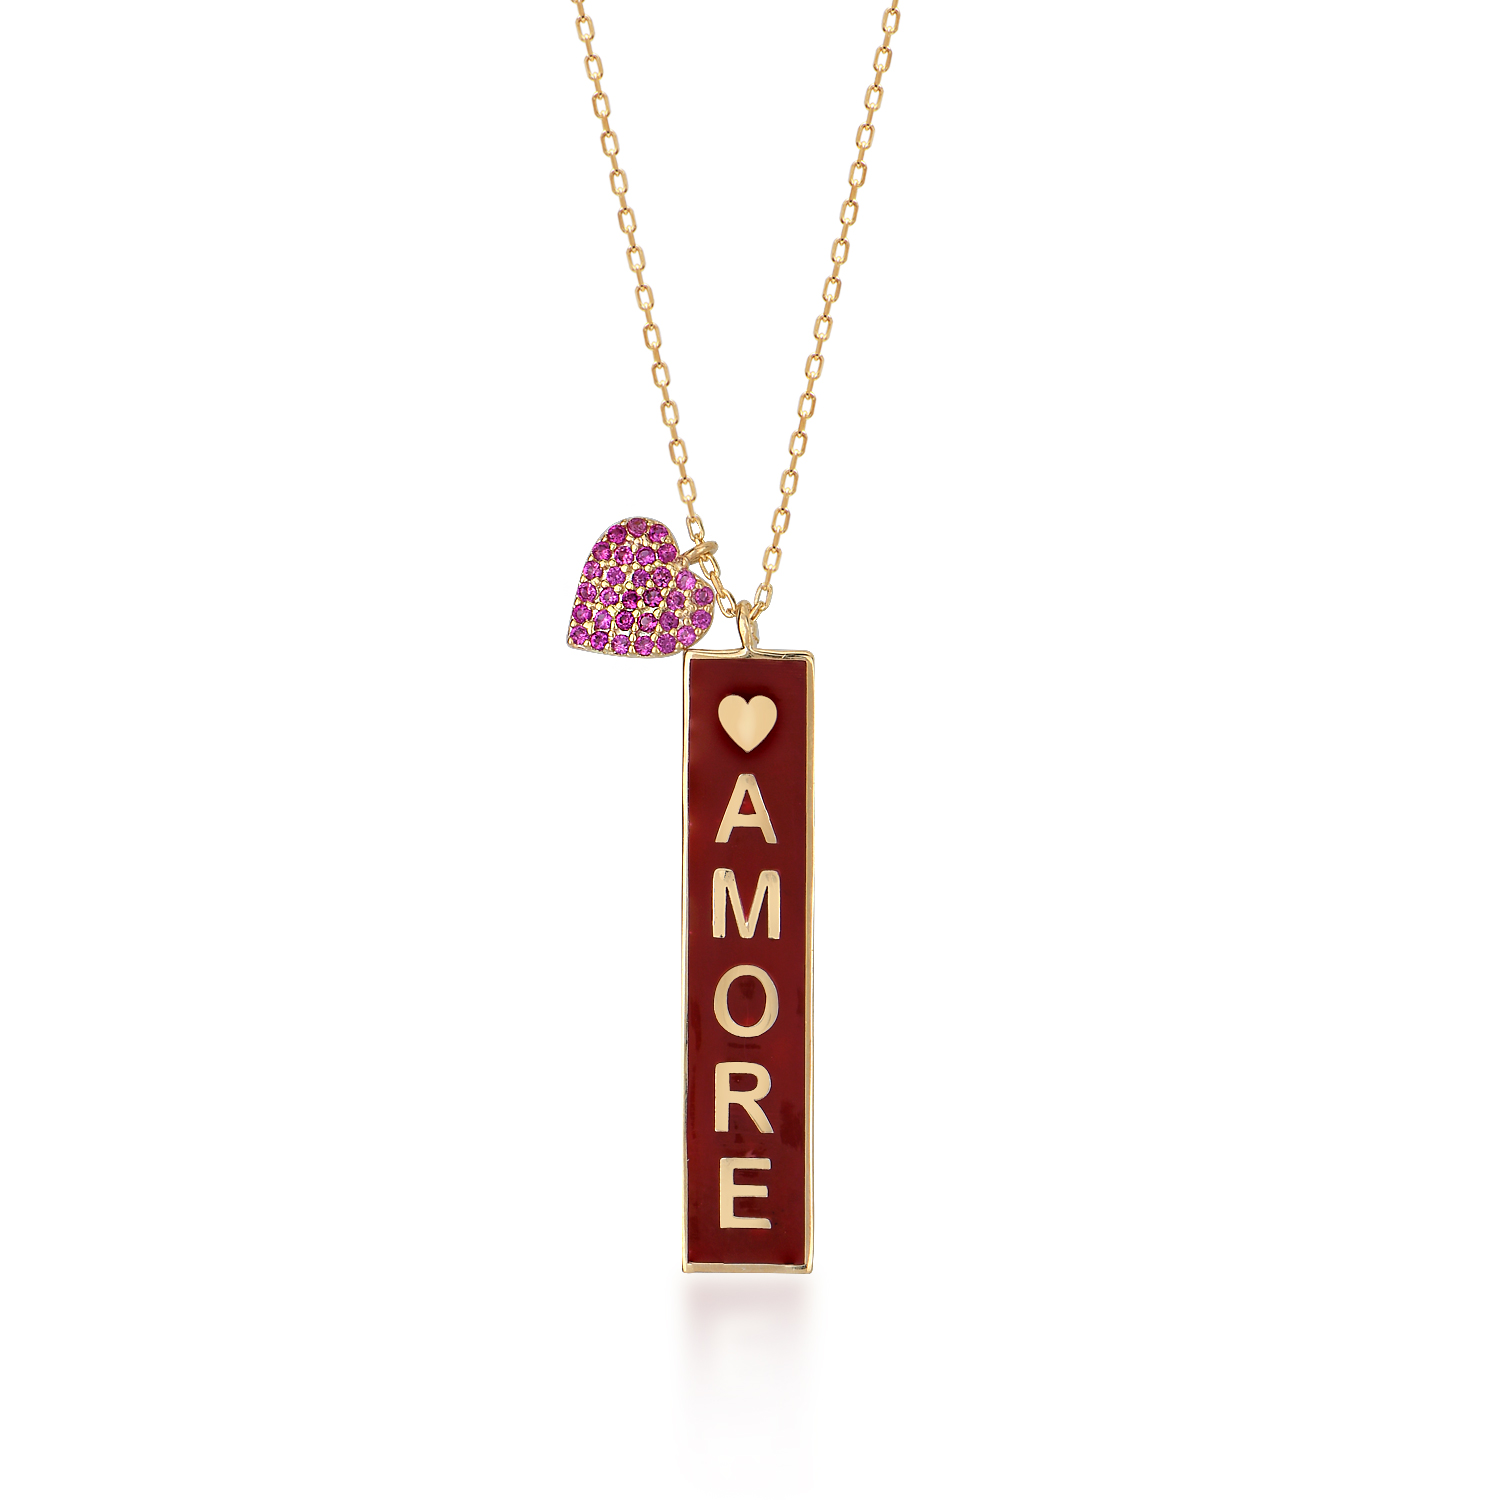 cosar-silver-sterling-silver-925-necklace-with-amore-written-heart-plate